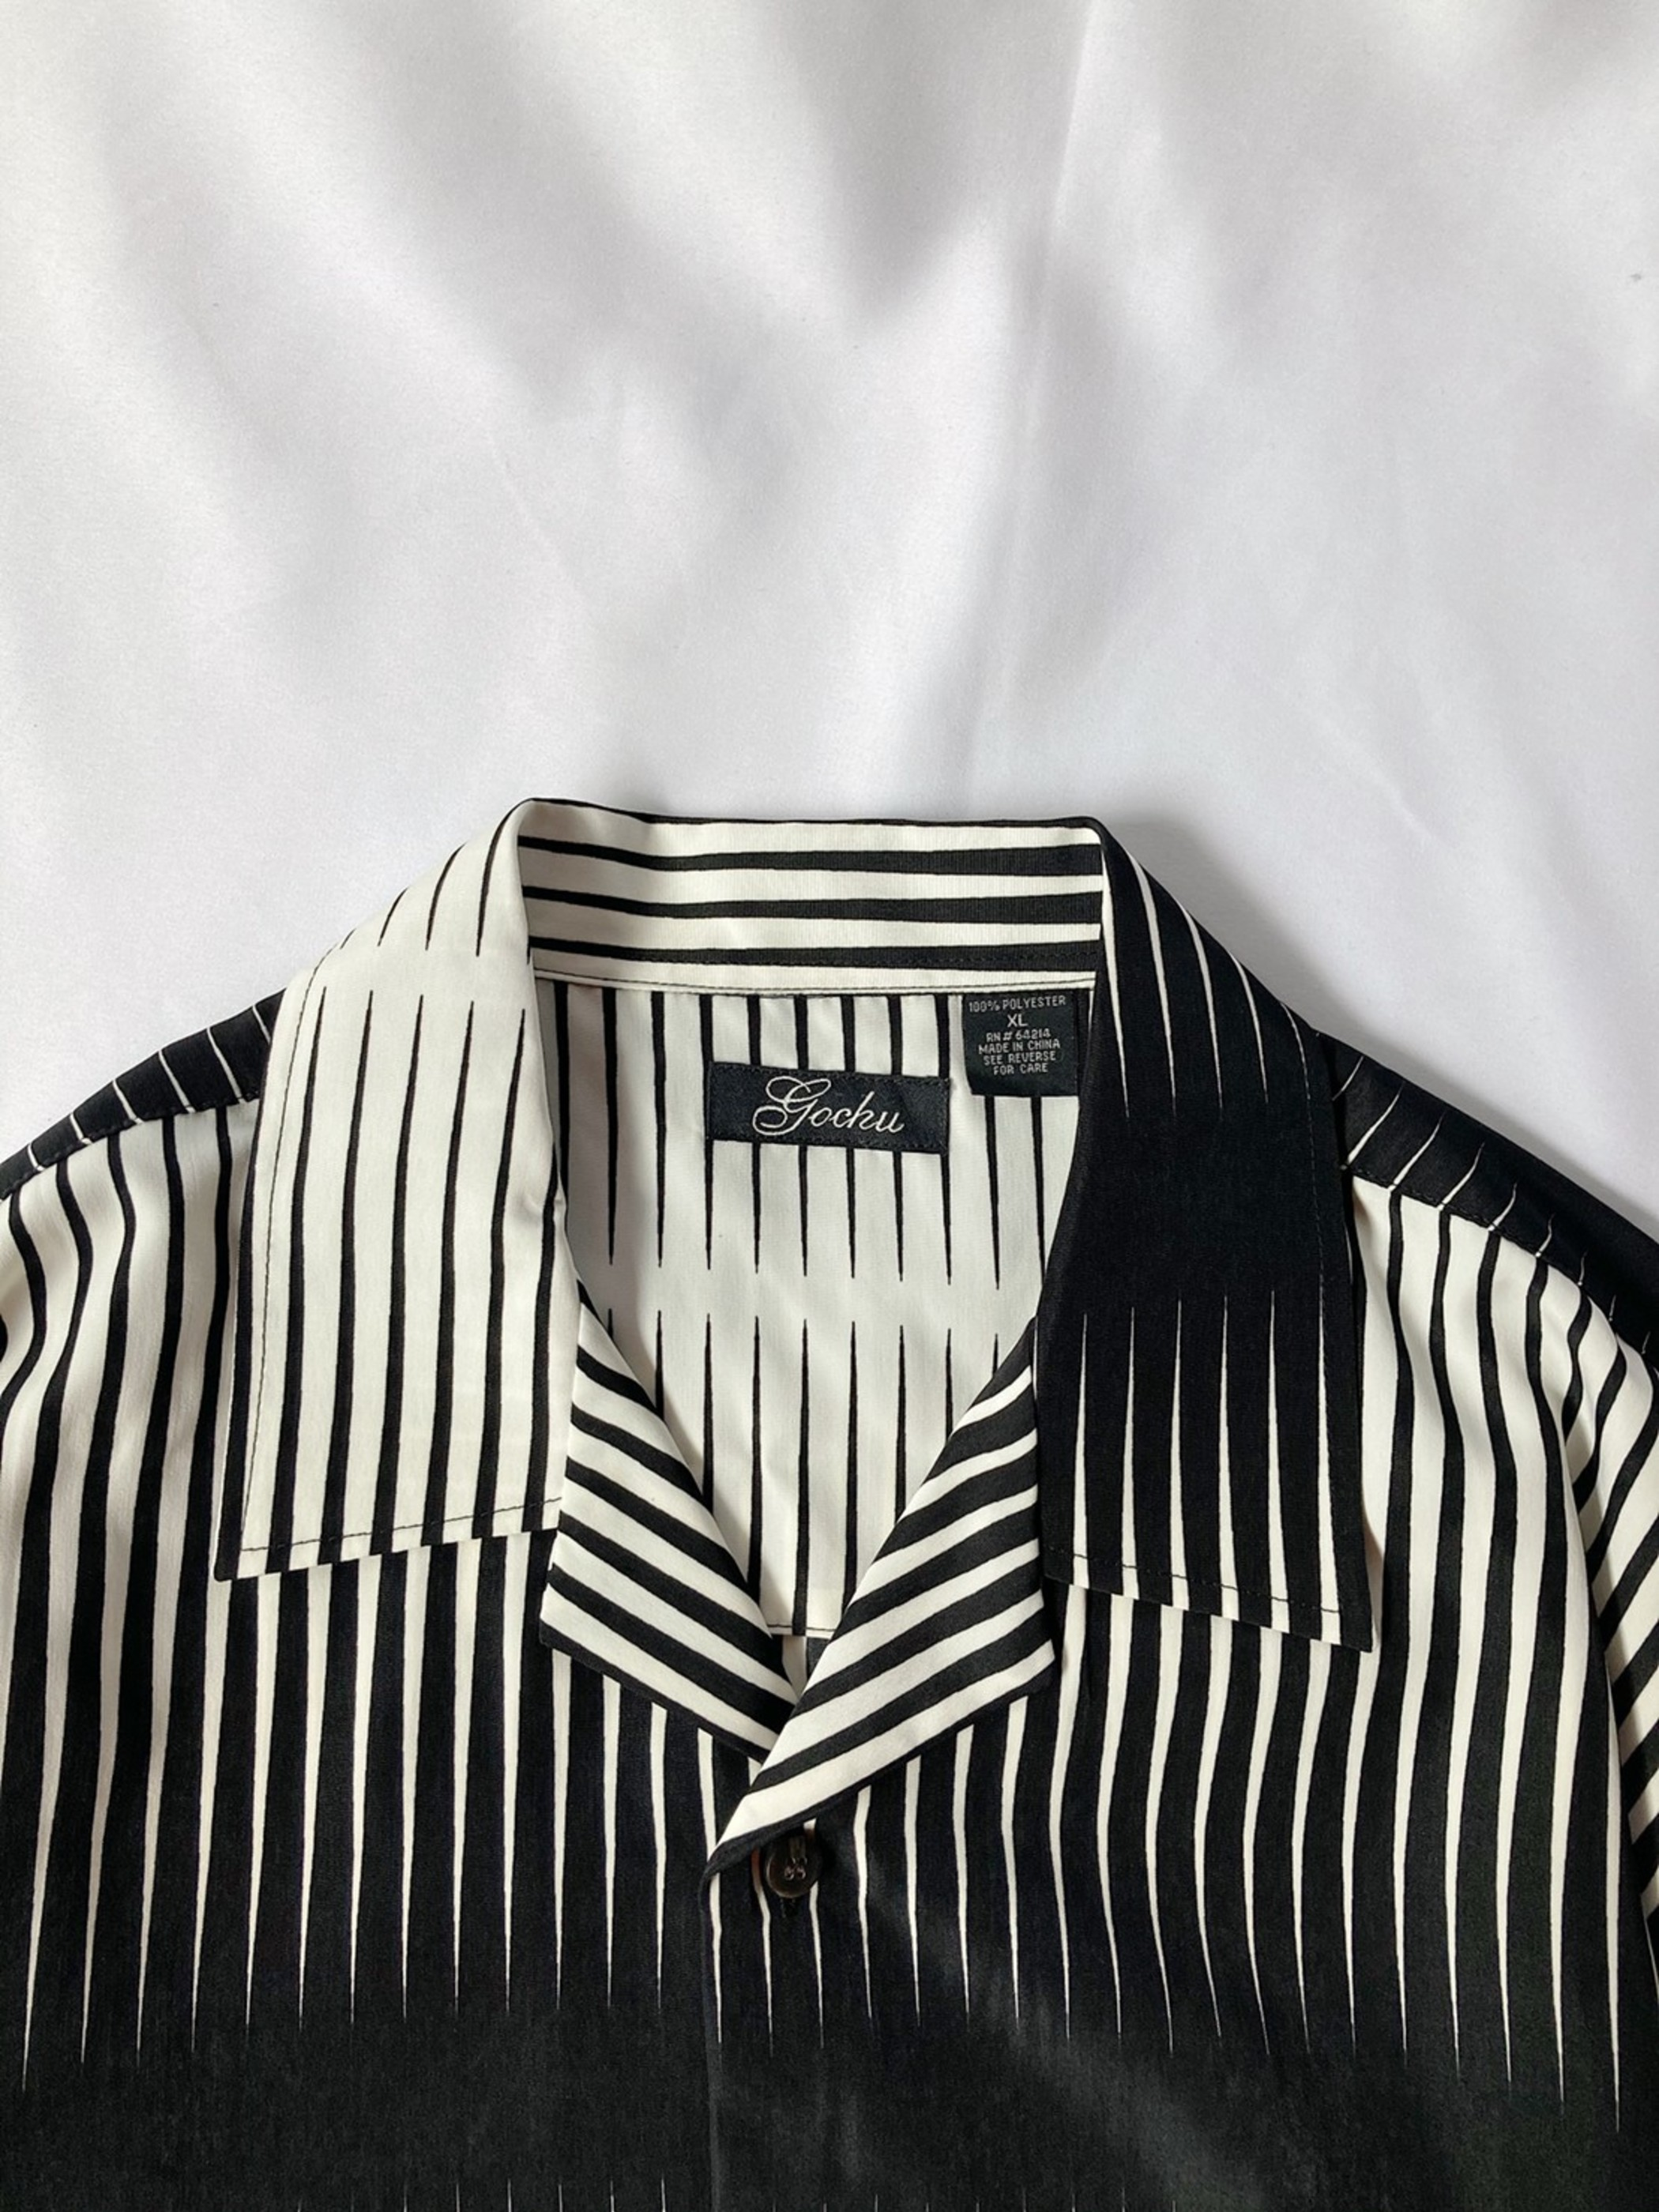 monochrome open collar shirt